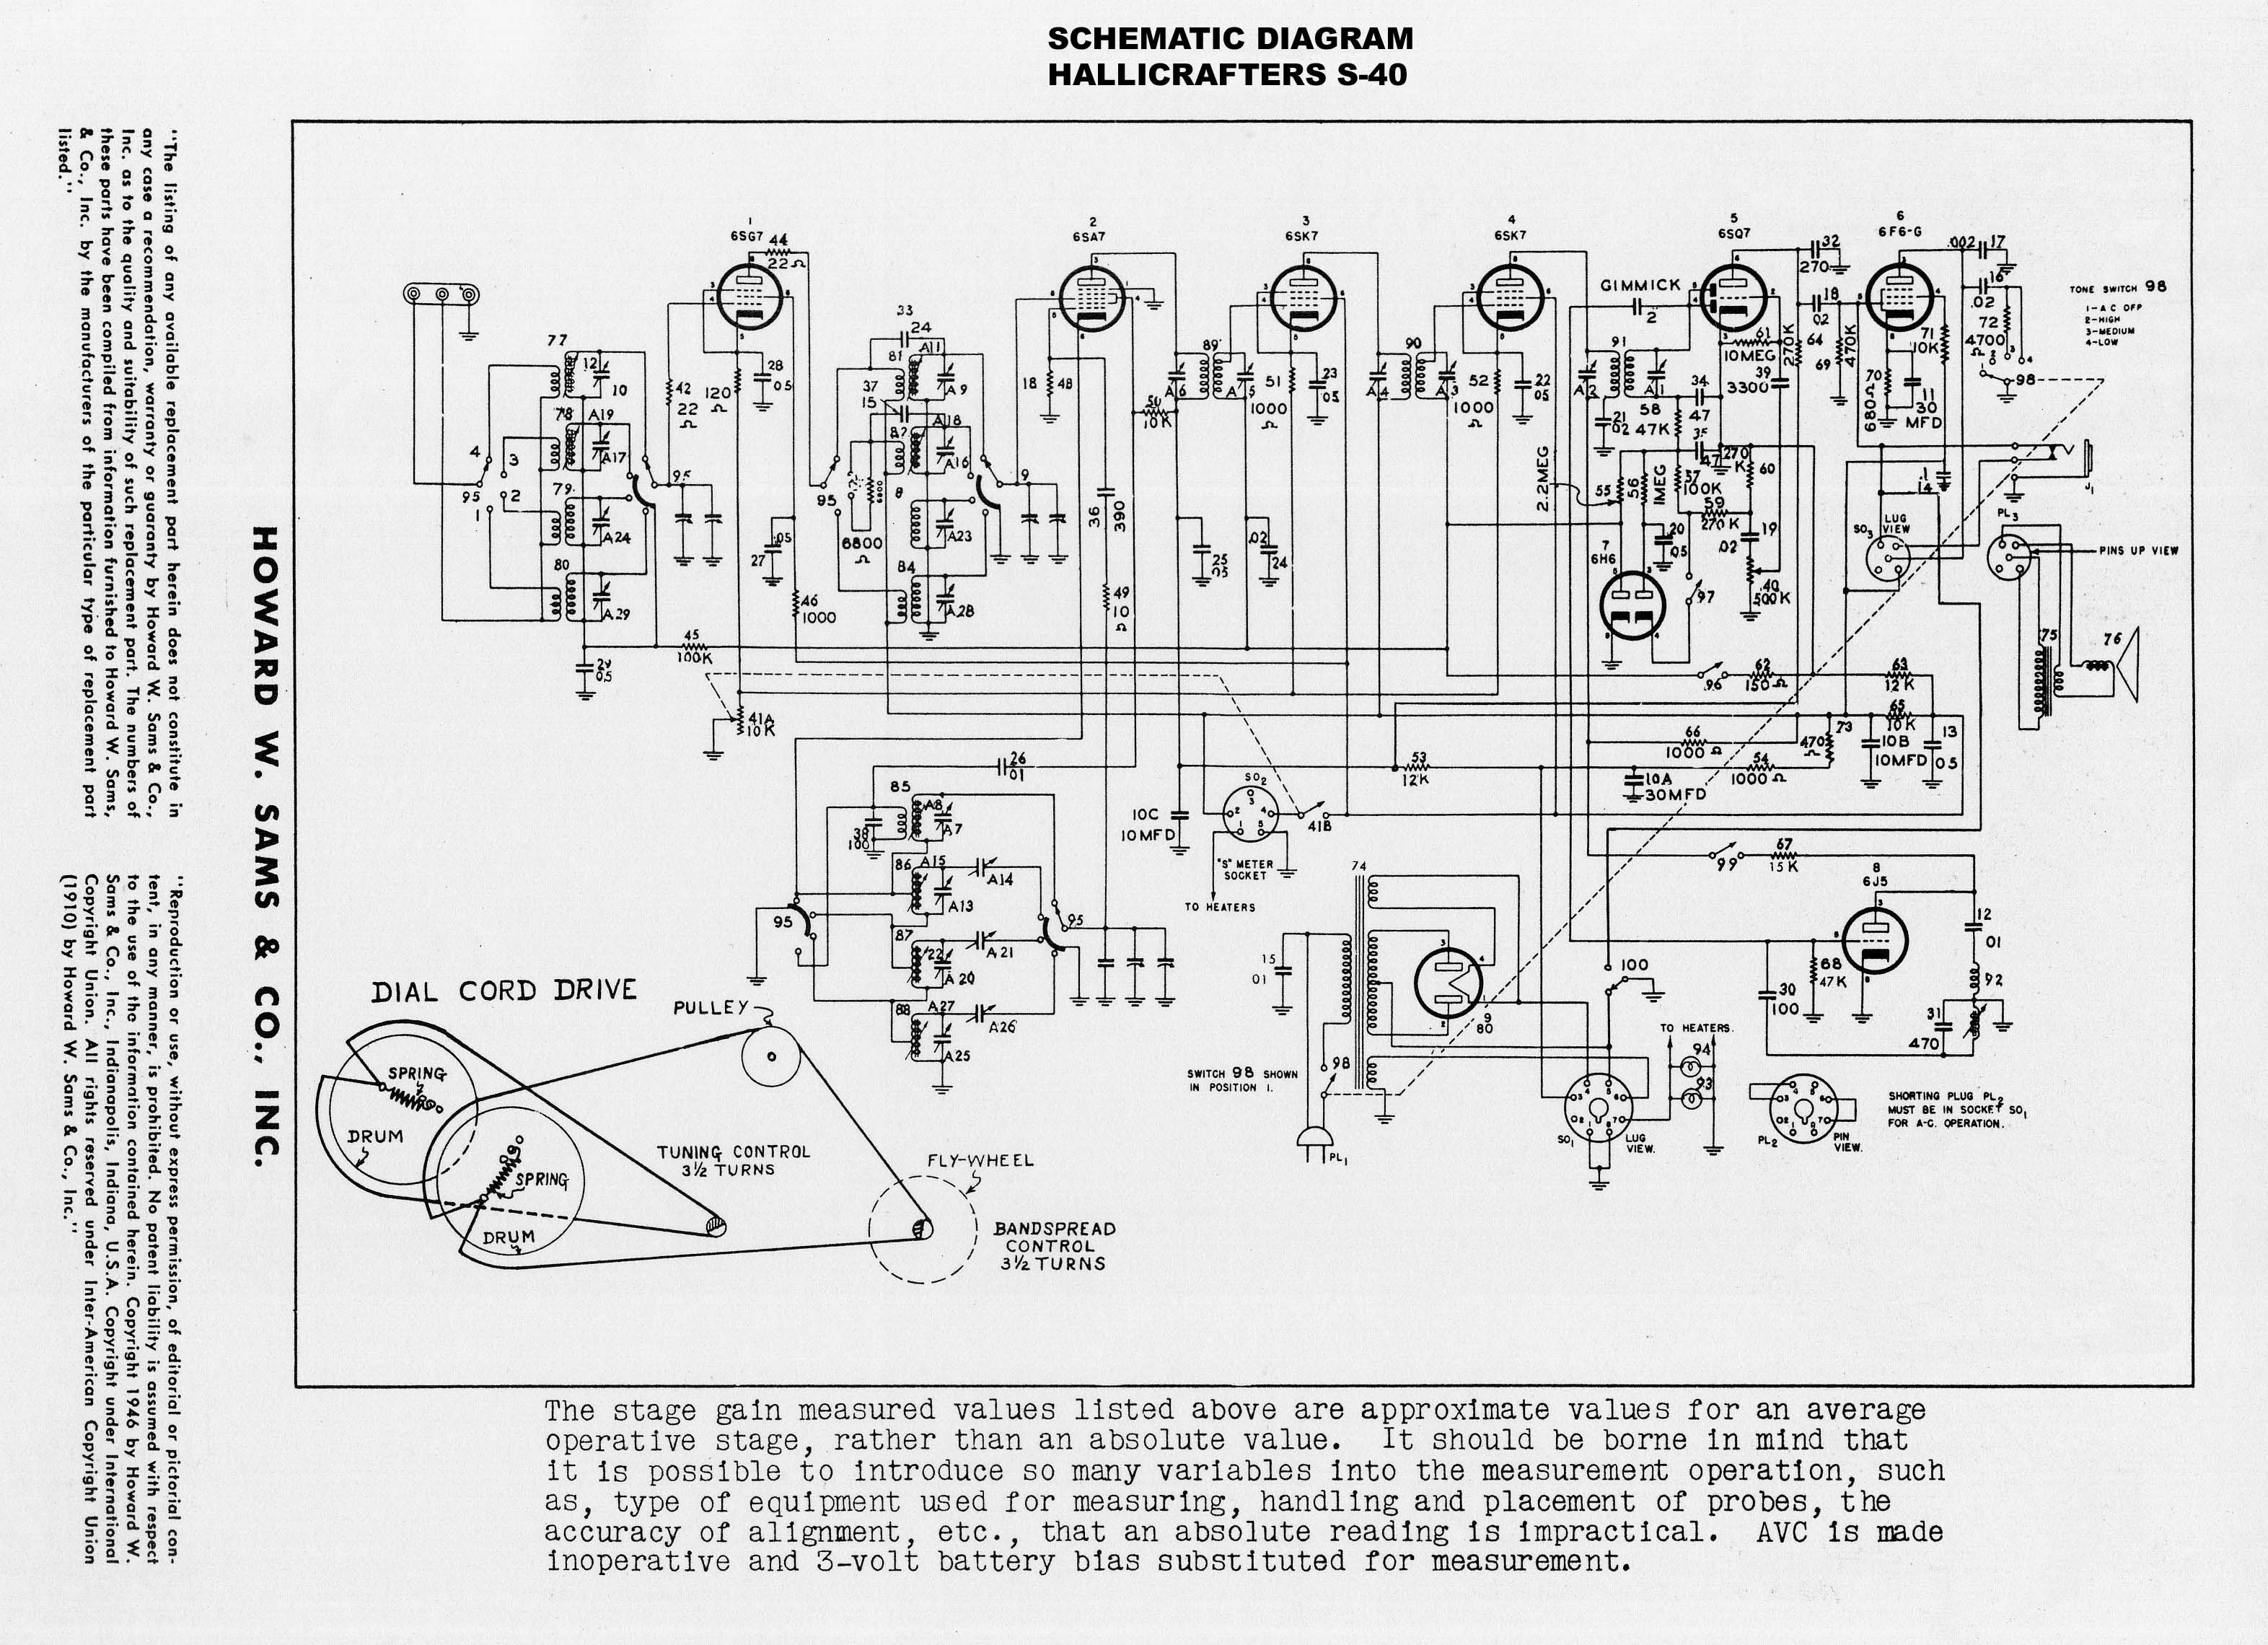 power wiring diagram symbols old wiring diagram symbols old image wiring diagram hvac symbols for electrical wiring diagram hvac discover